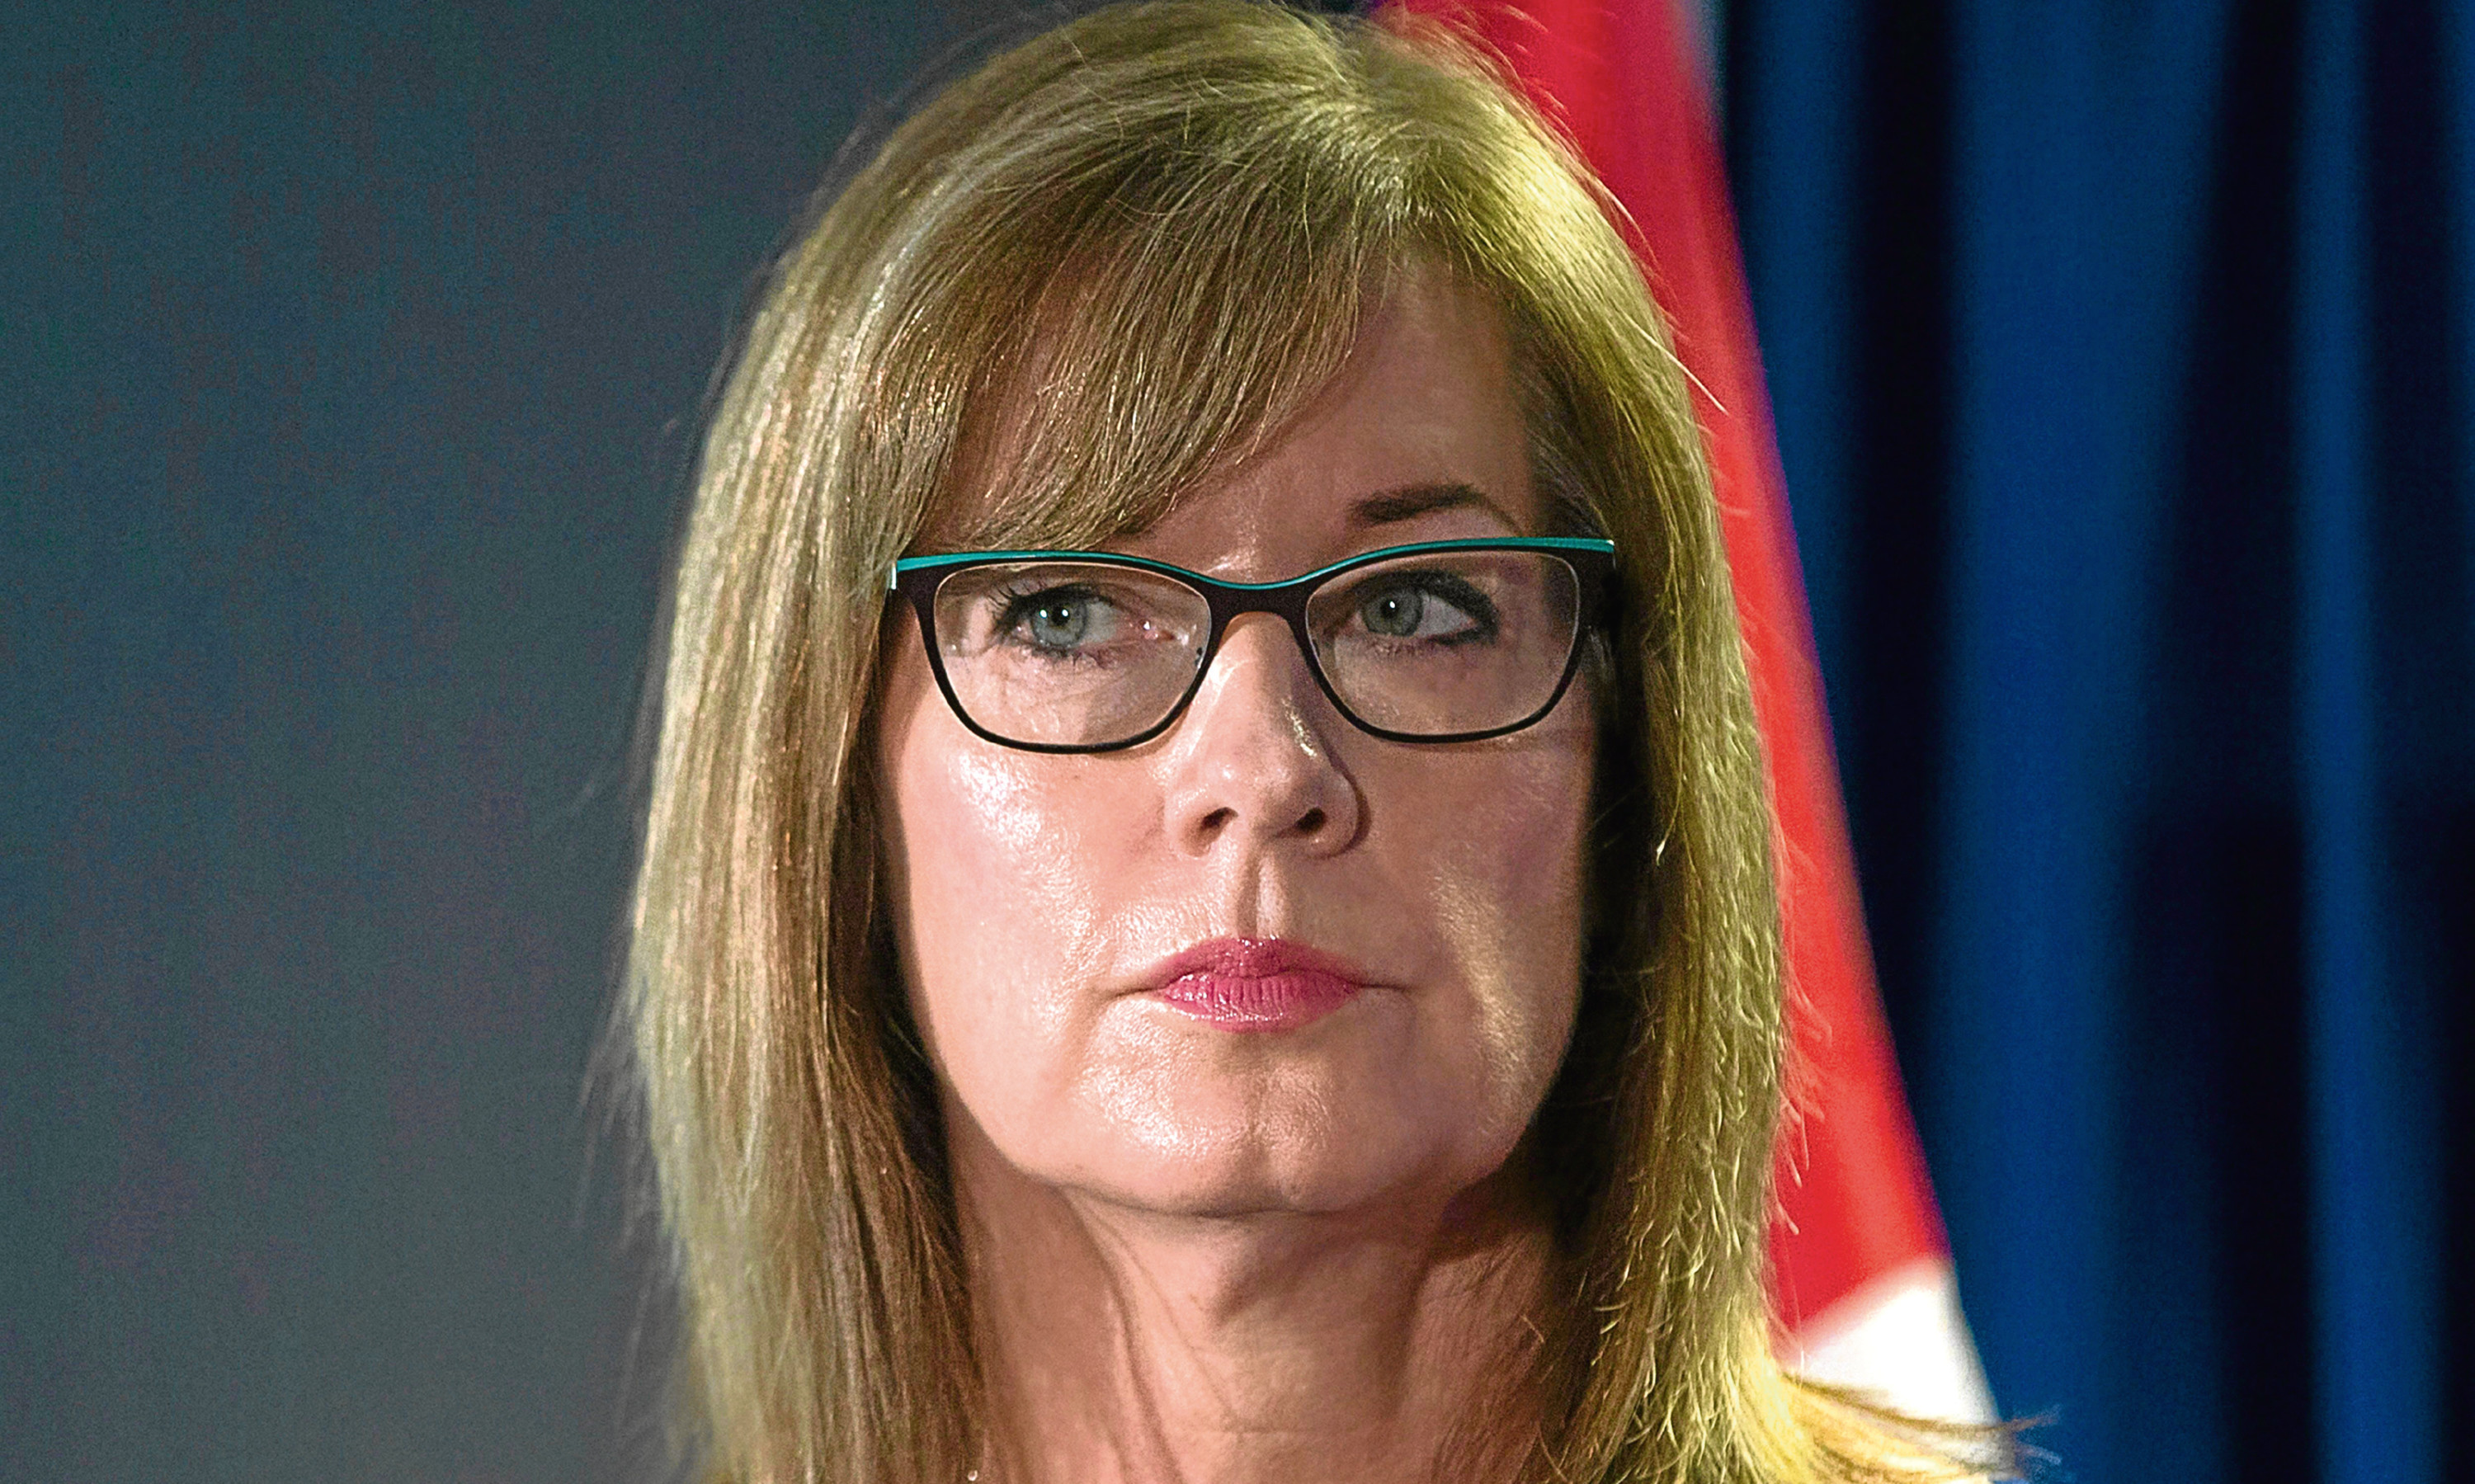 Information and Privacy Commissioner Elizabeth Denham has intervened in the Cambridge Analytica data row. Picture: Canadian Press/PA Images.